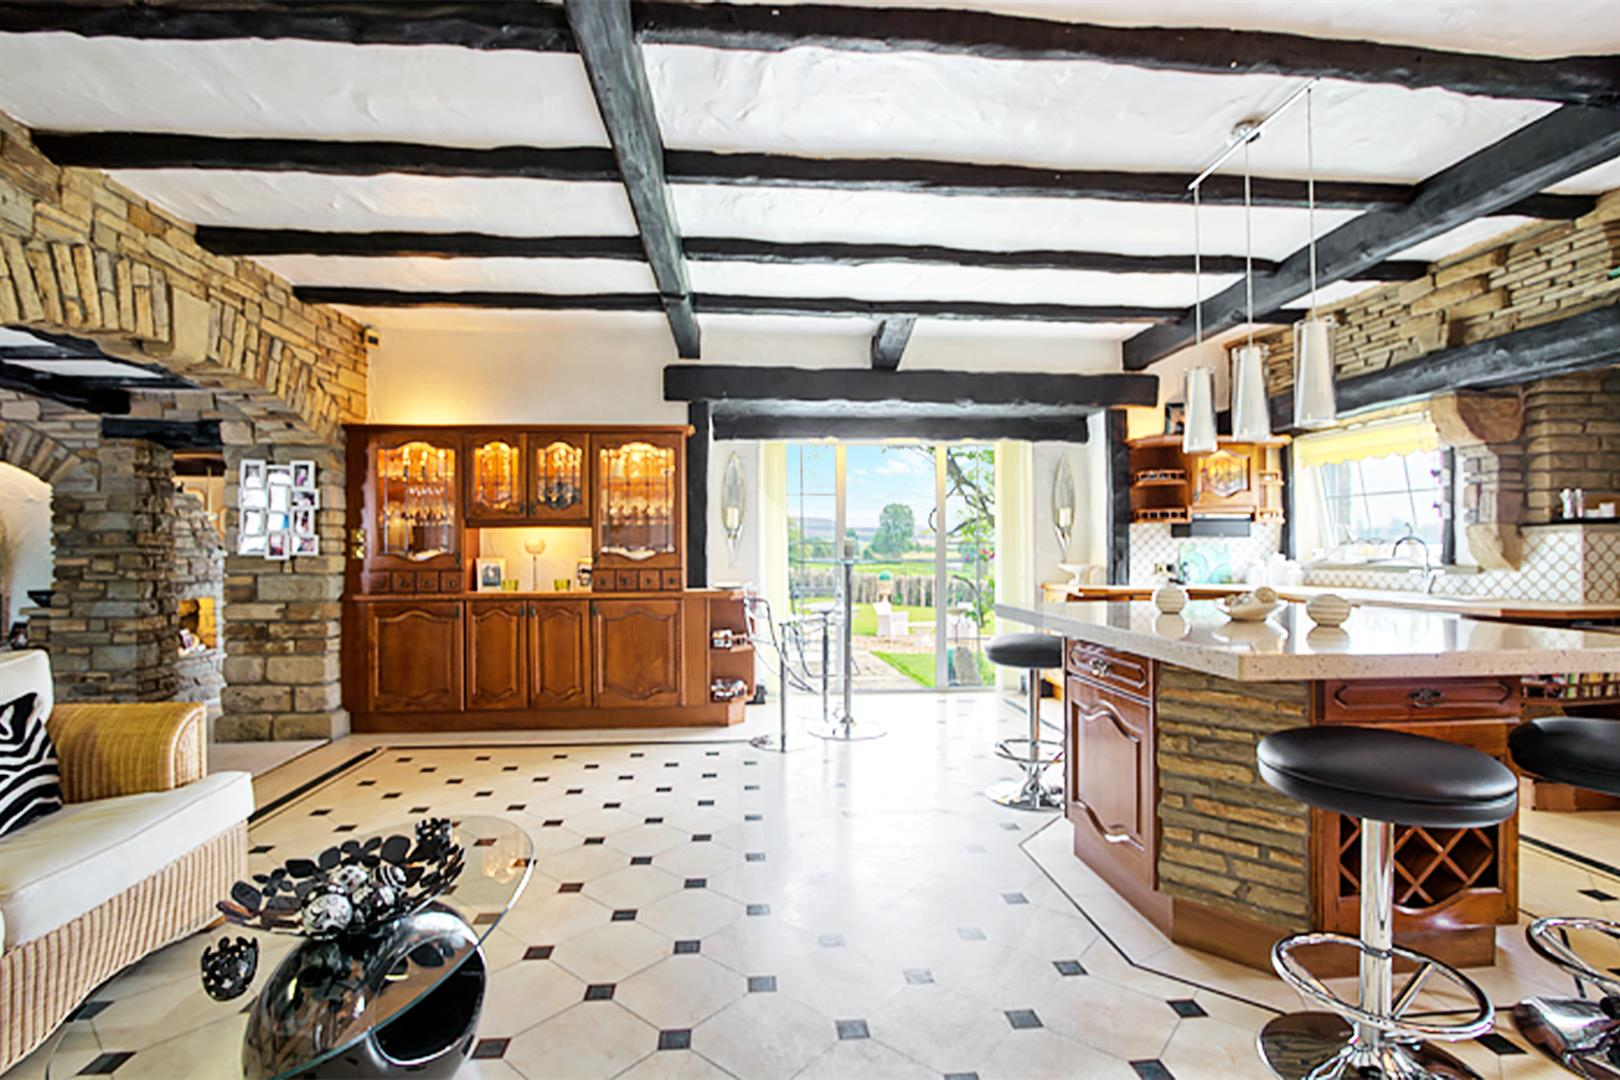 4 bedroom house For Sale in Bolton - kitchen 4.png.